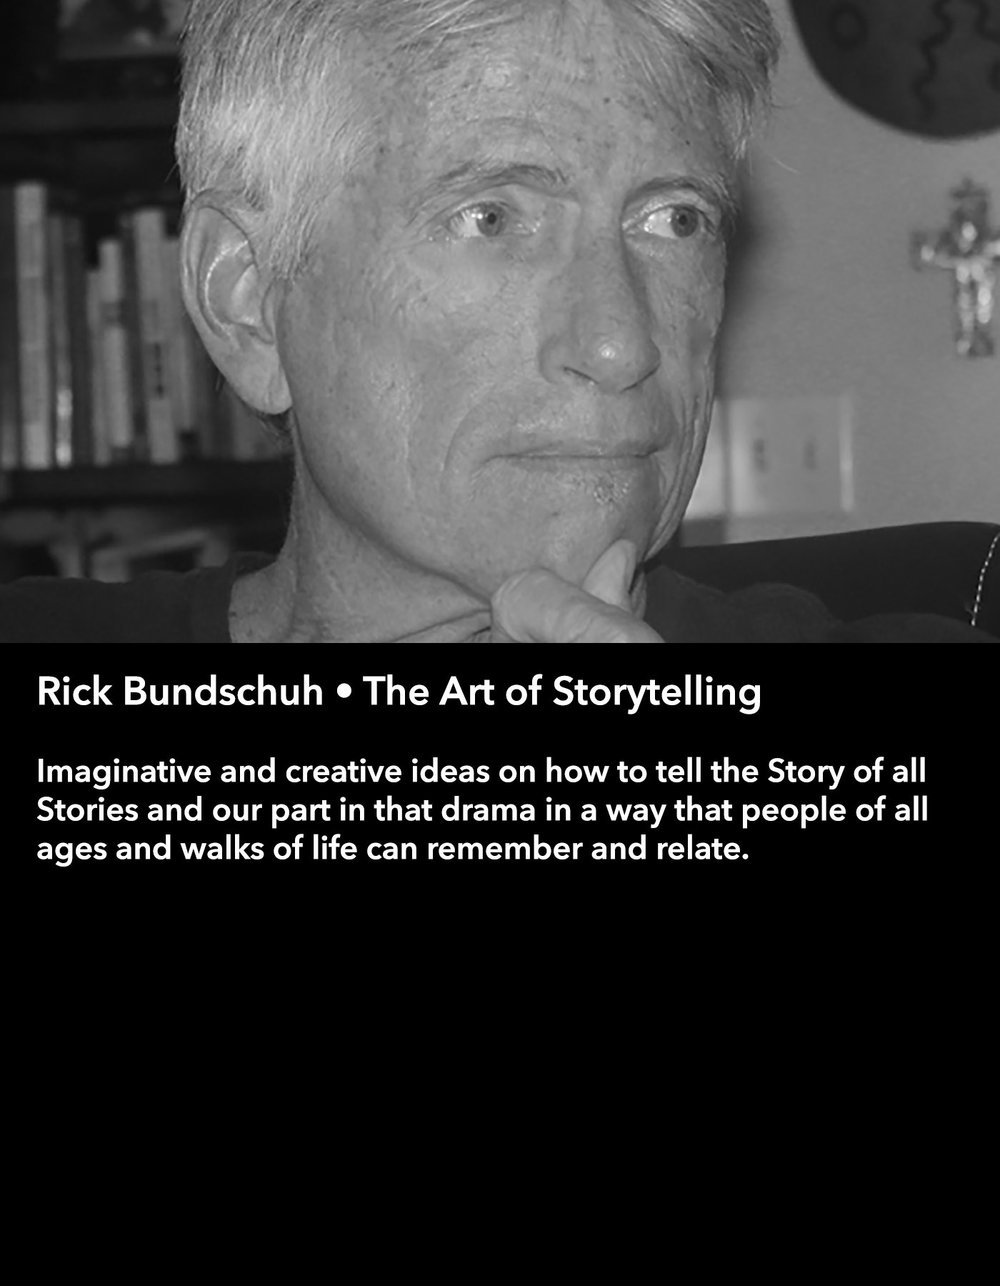 Rick Bundschuh • The Art of Storytelling • Friday Night, March 17 • 8:30 – 9:45 pm